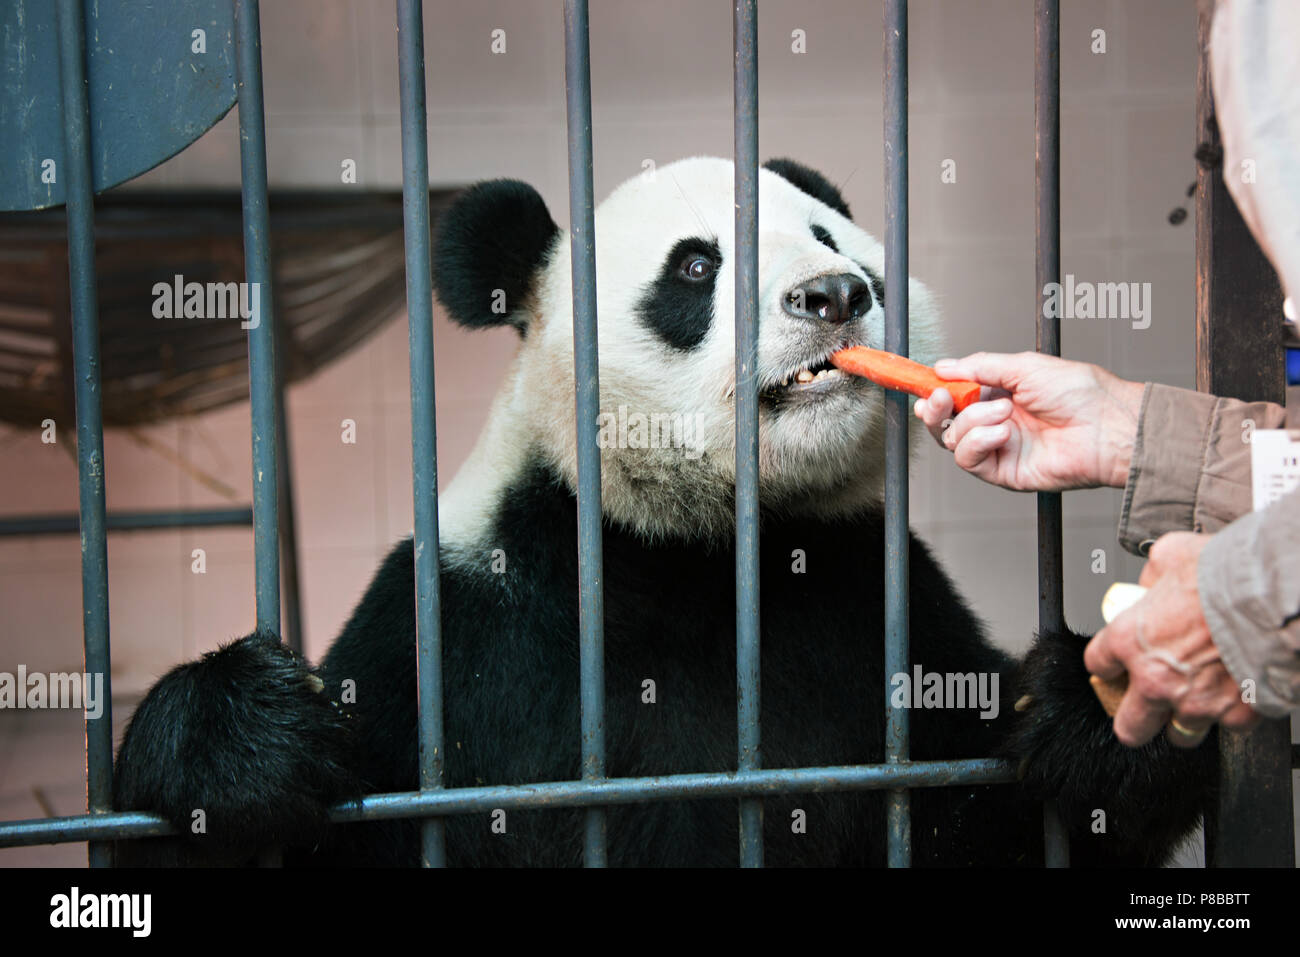 A woman visitor is feeding a Giant Panda at the Chengdu breeding centre - Stock Image